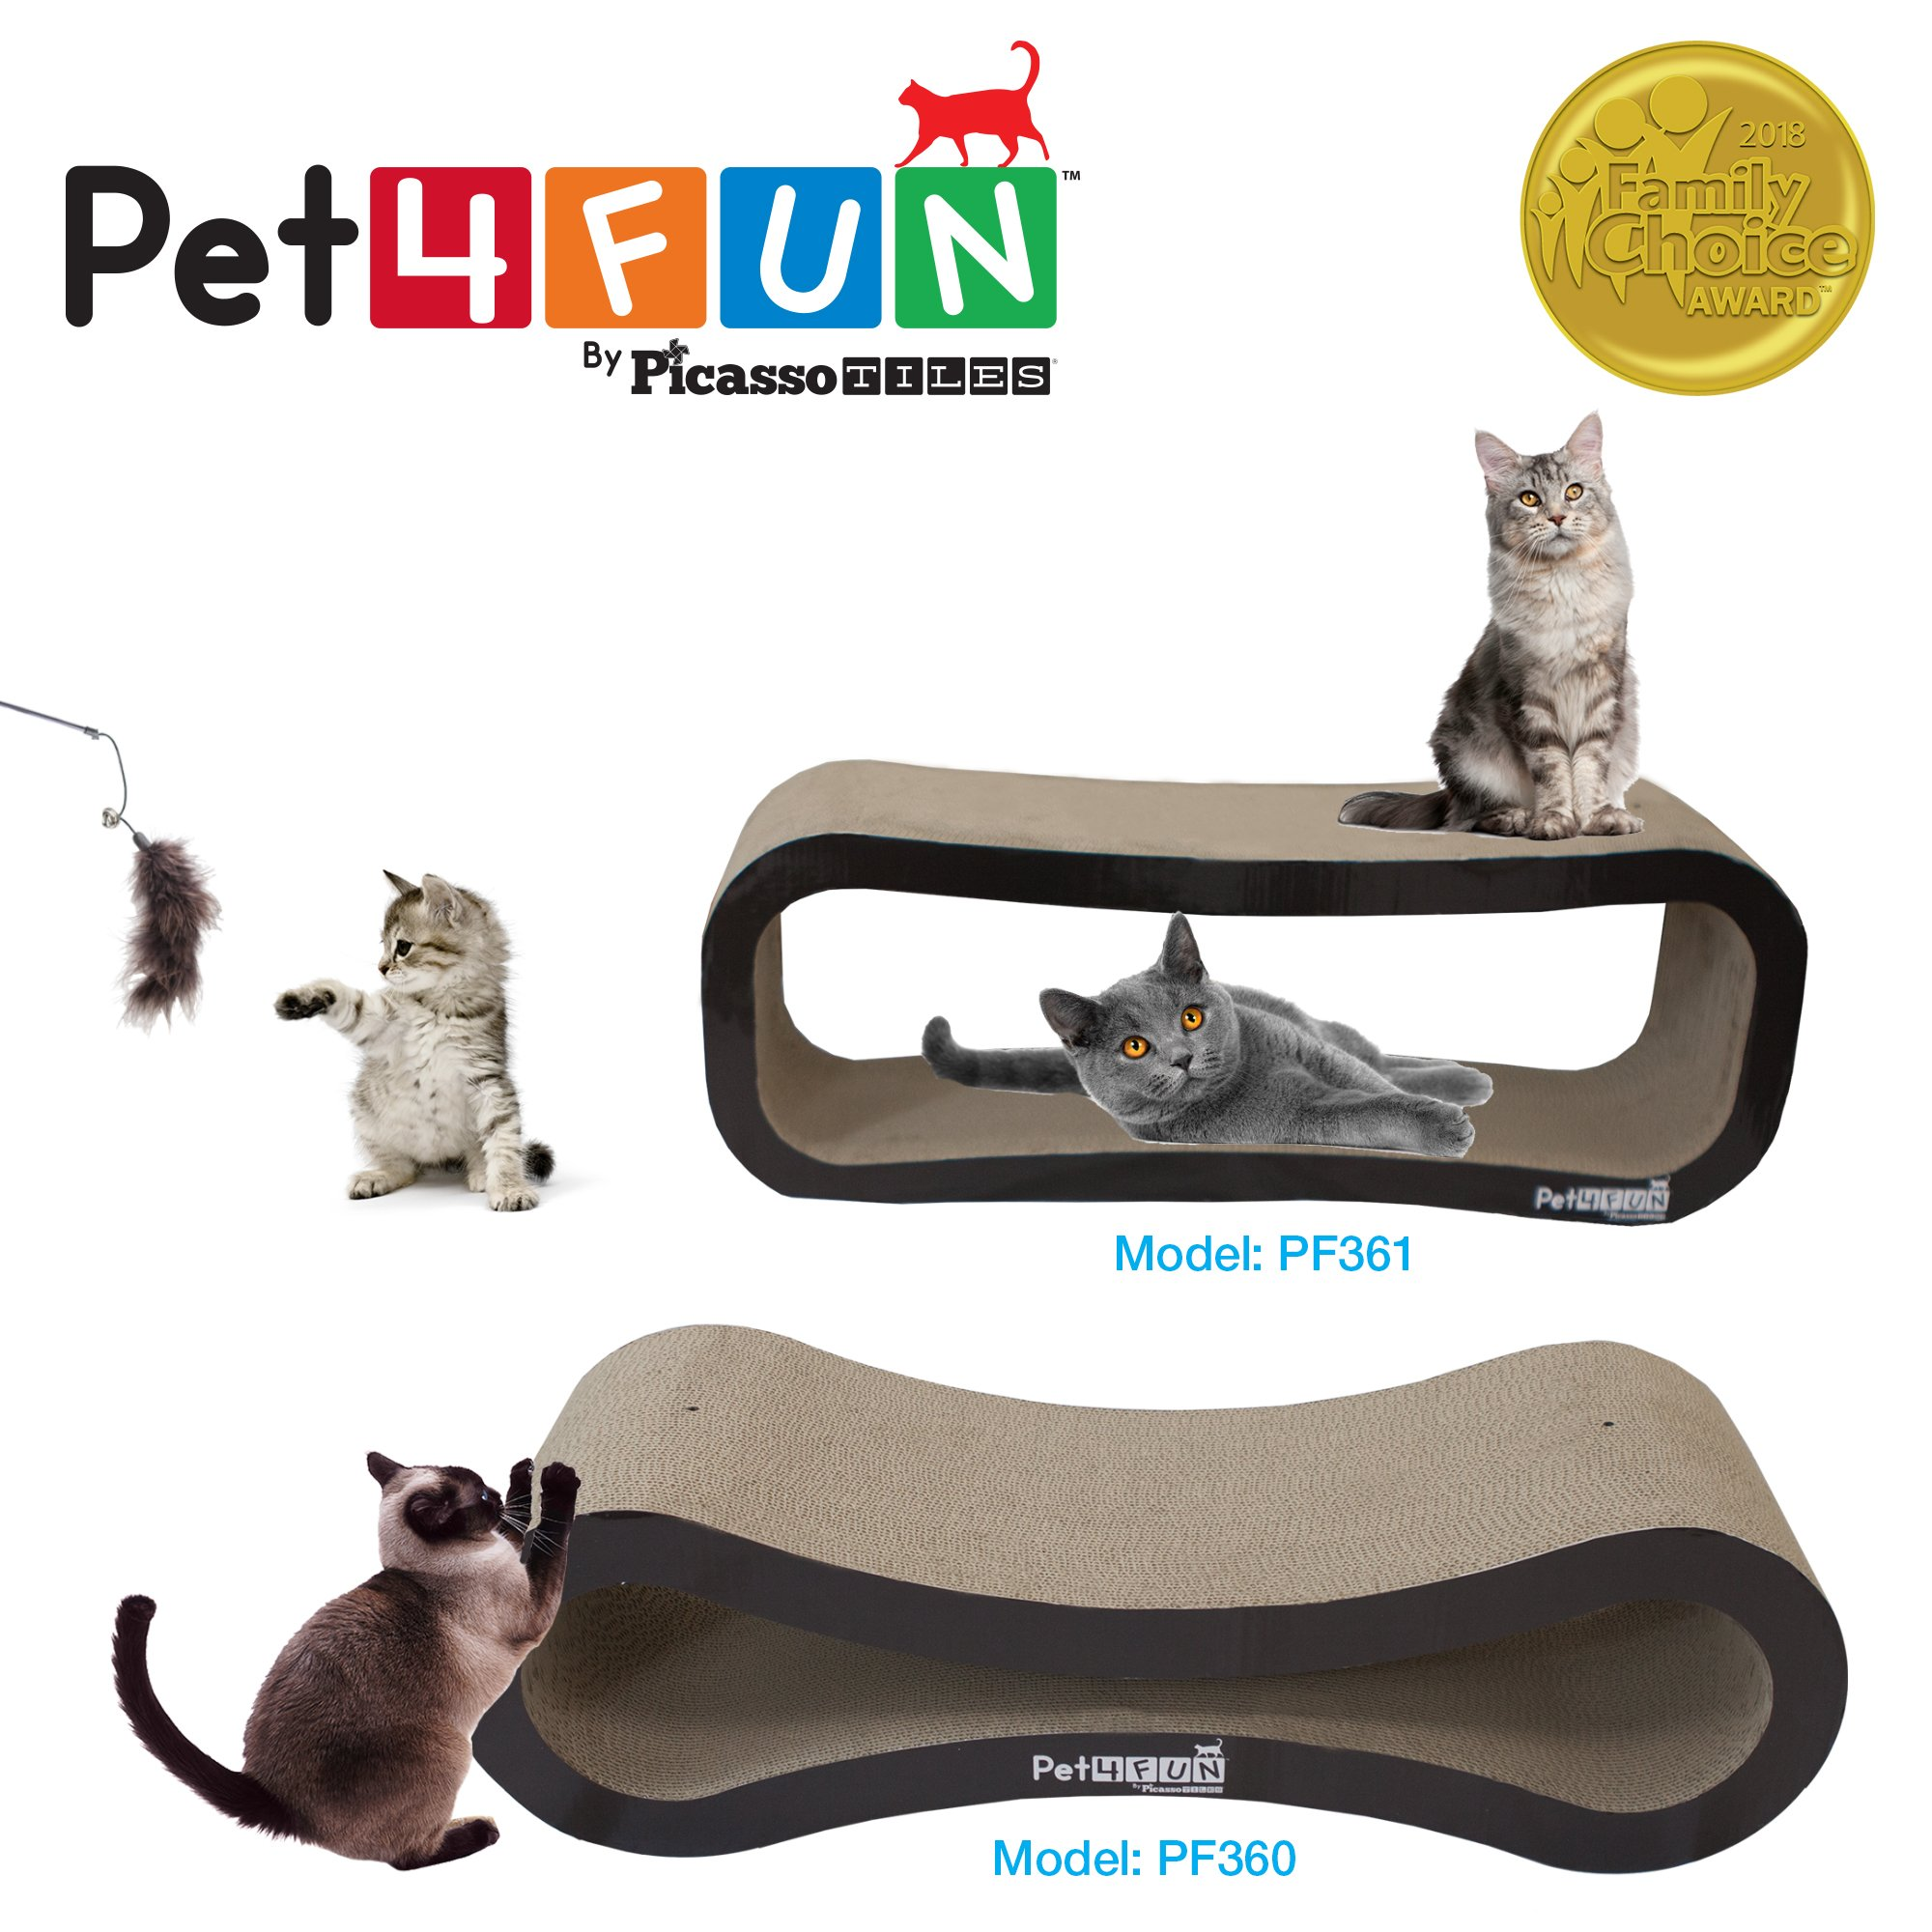 Pet4Fun® PF360 4 in1 Reversible Durable Stylish Cat Scratcher Lounge w/ large space and special teaser holder for scratching, playing, resting, and napping. Teaser, Comb, & Catnip Included by Picasso Tiles by PicassoTiles (Image #5)